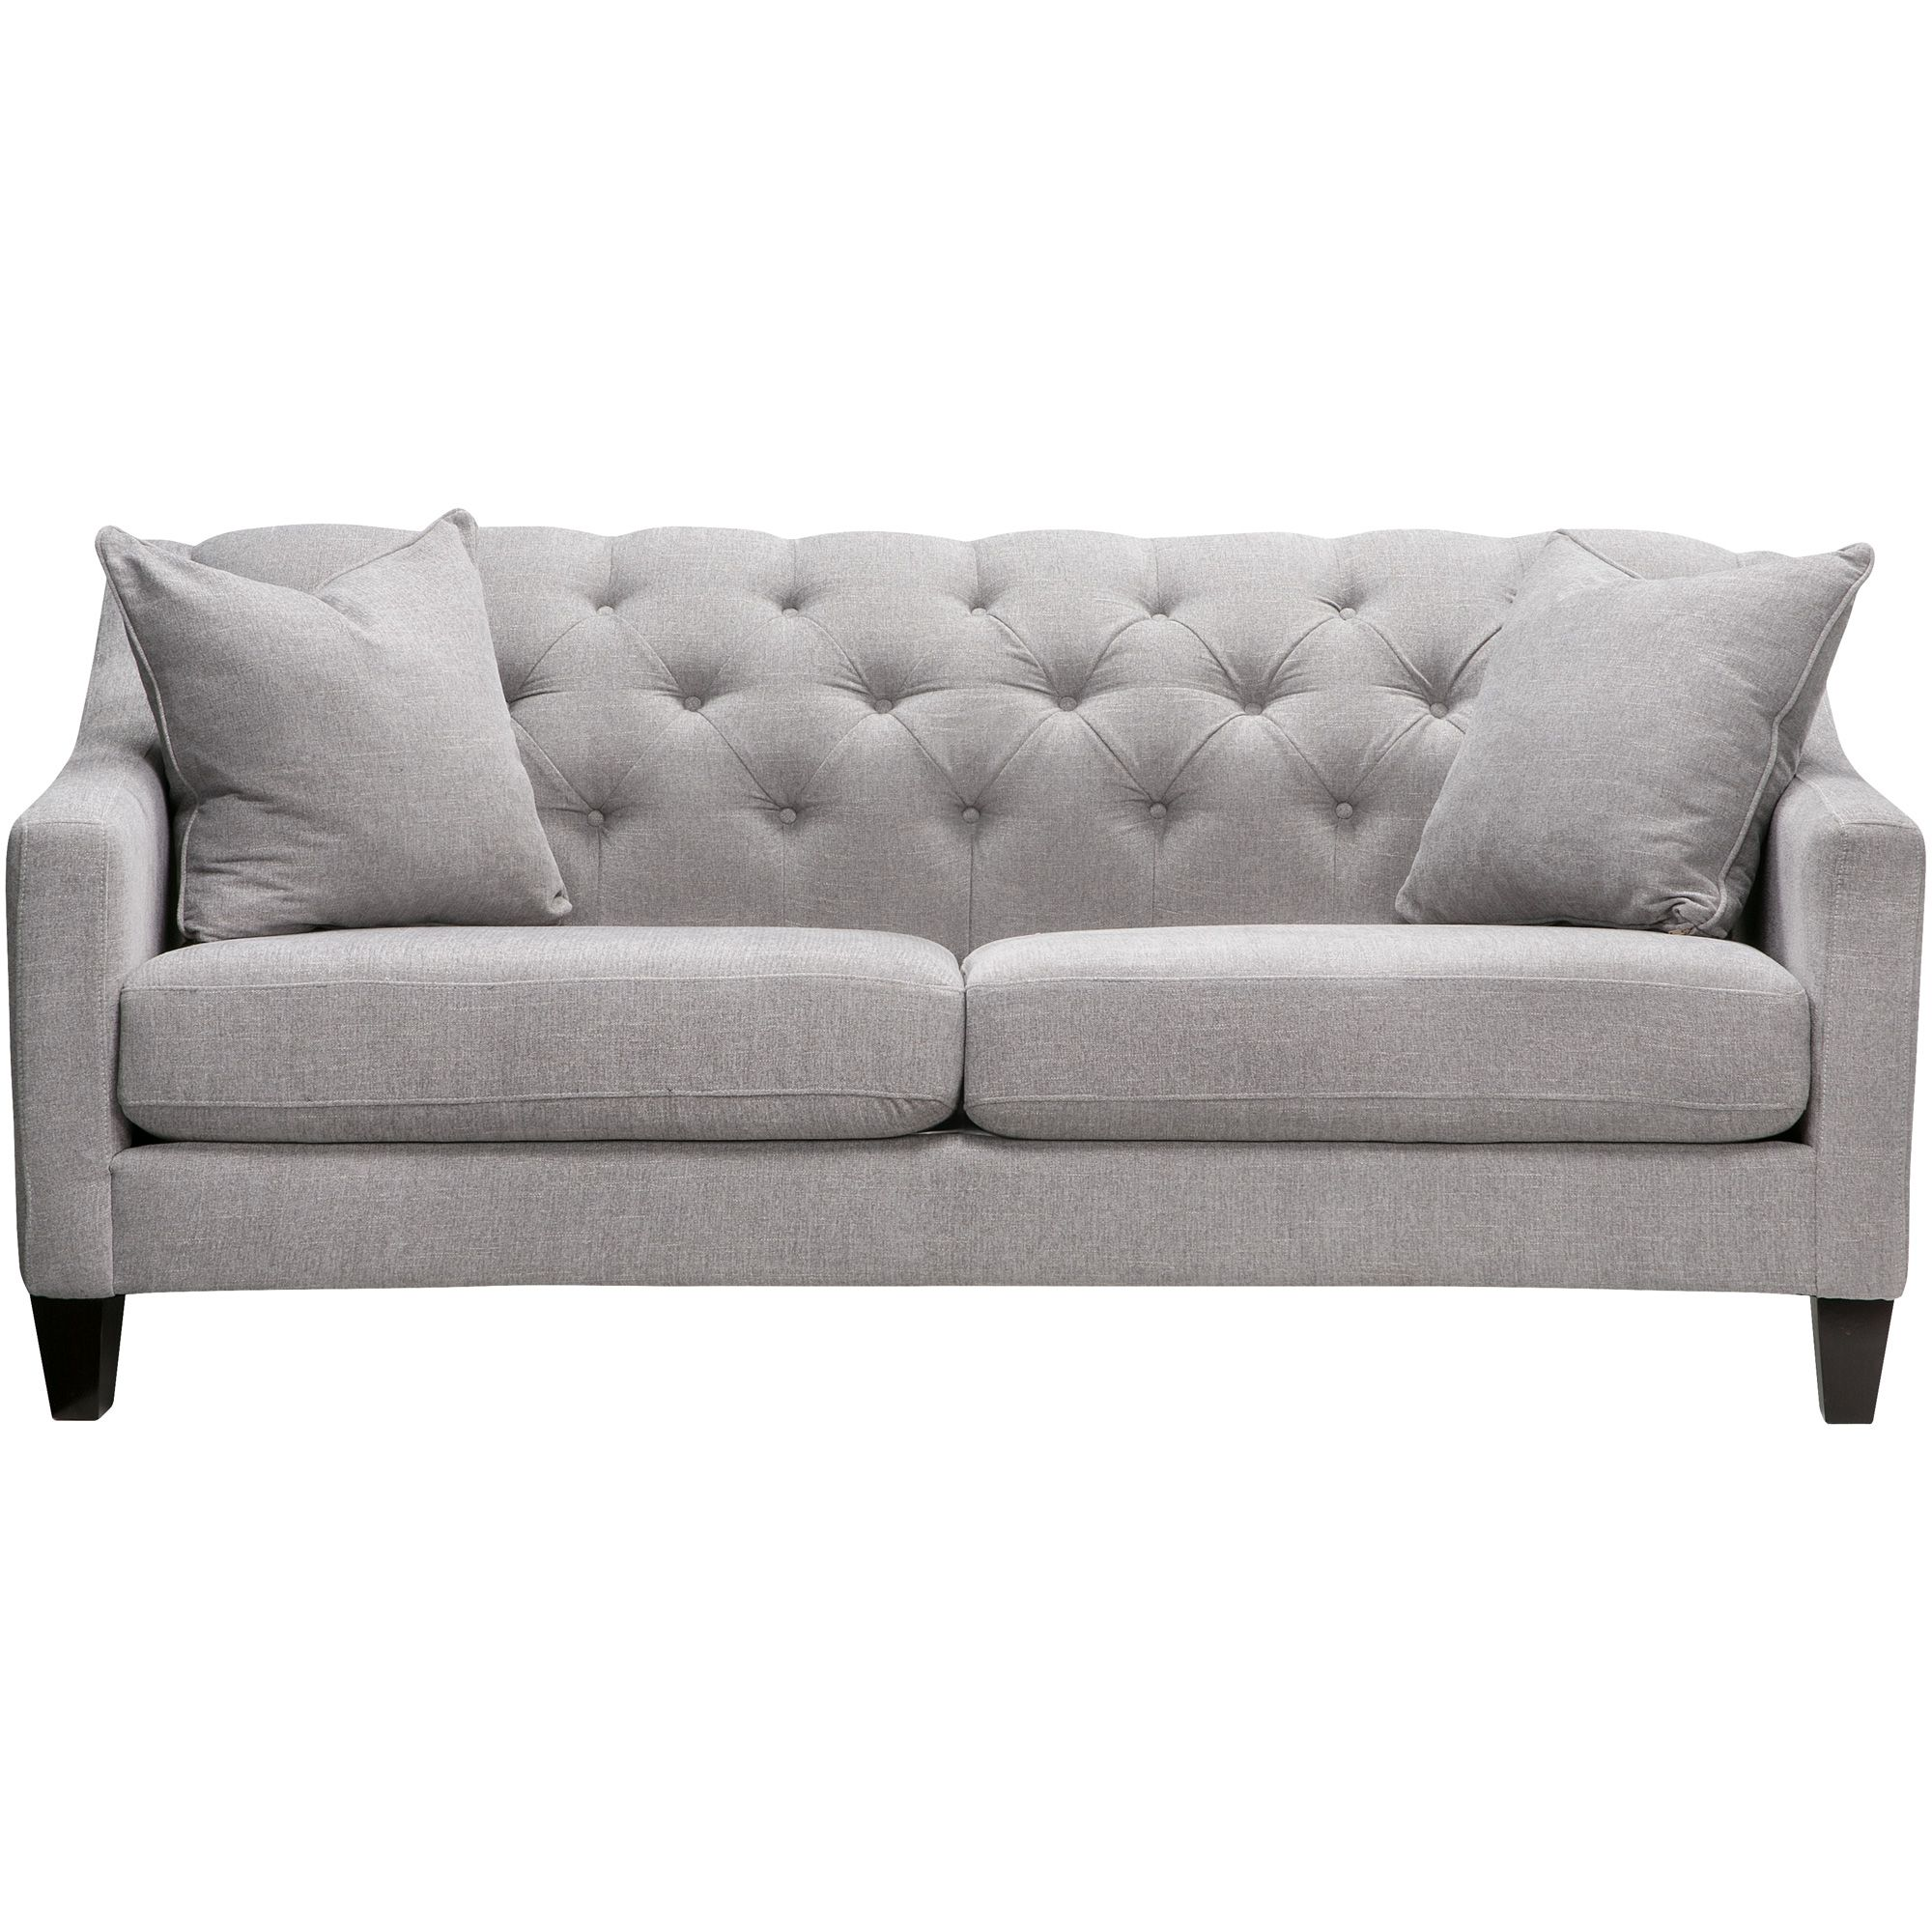 Solo Burlap Sofa in 2019 | Silver sofa, Sofa, Furniture